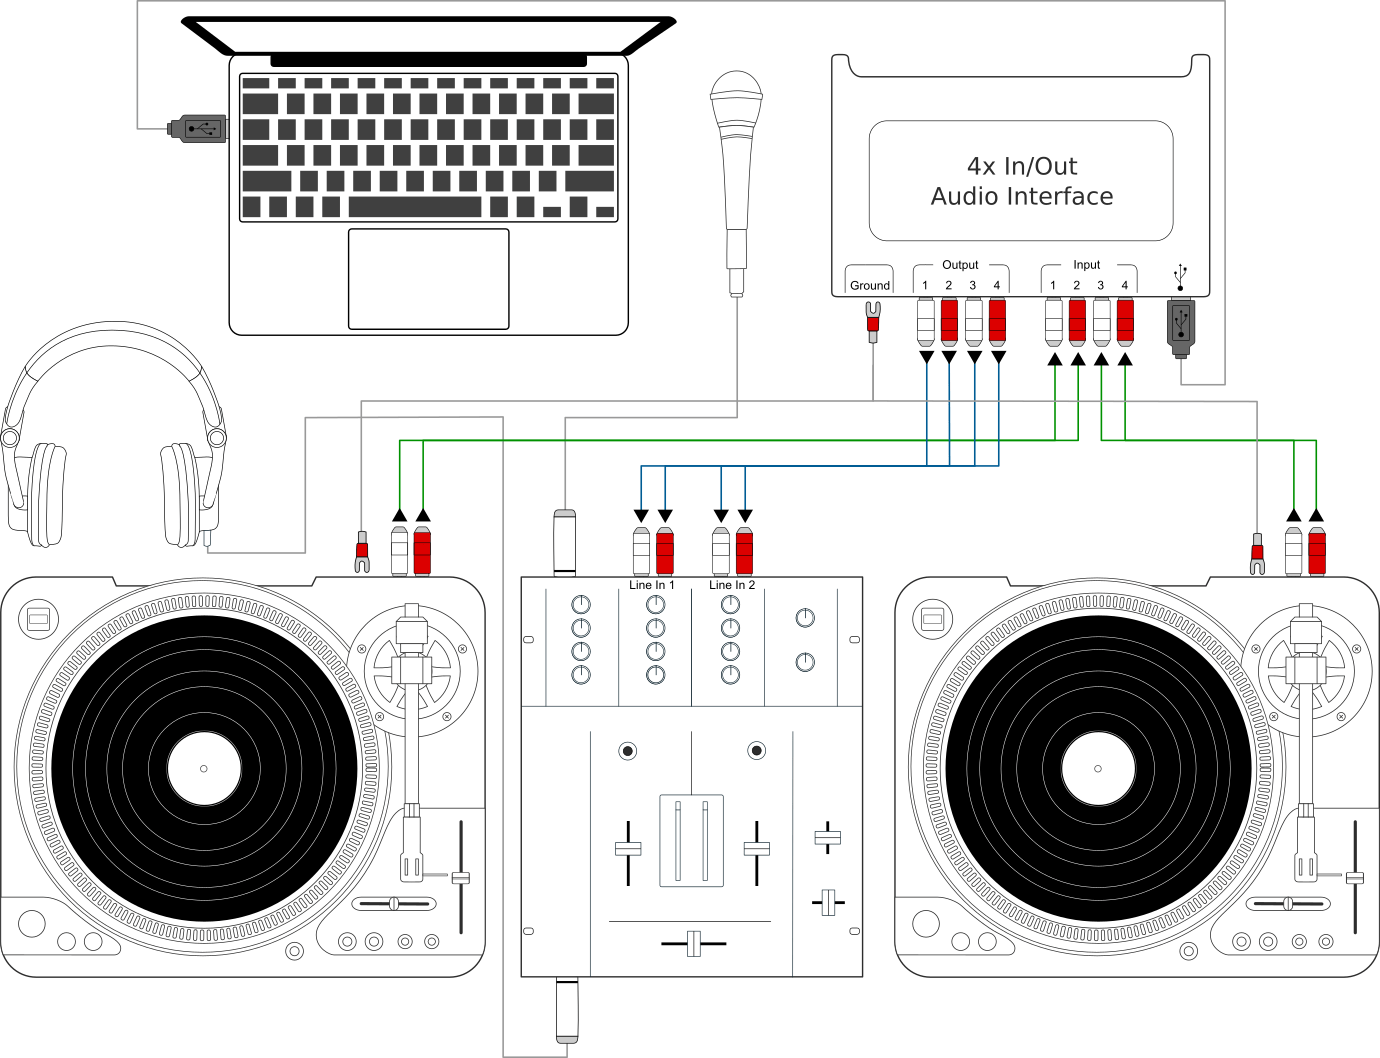 hight resolution of using mixxx together with turntables and external mixer  [ 1380 x 1058 Pixel ]